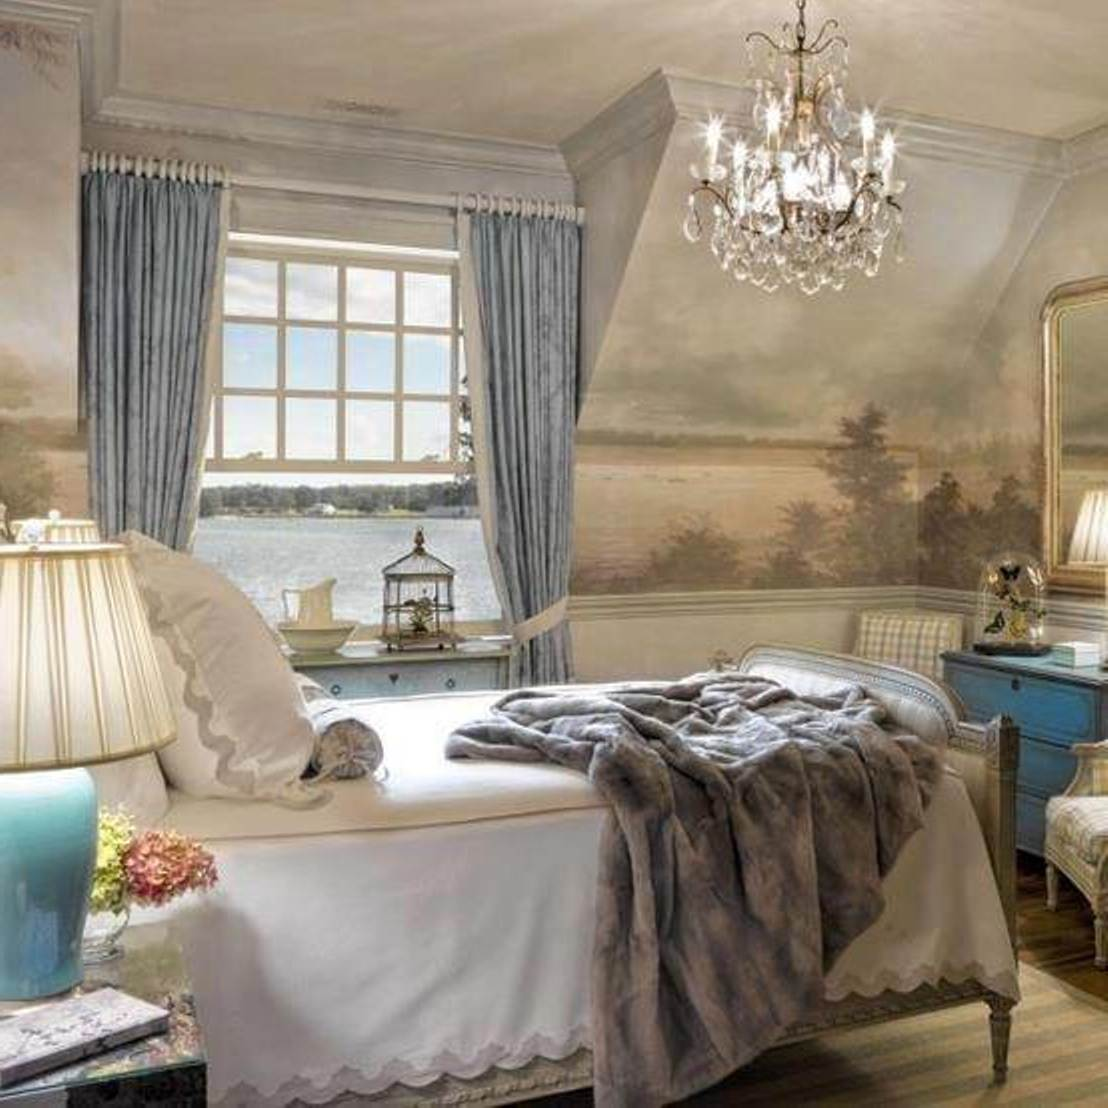 Accent Walls In Bedroom: How To Create A Stunning Accent Wall In Your Bedroom